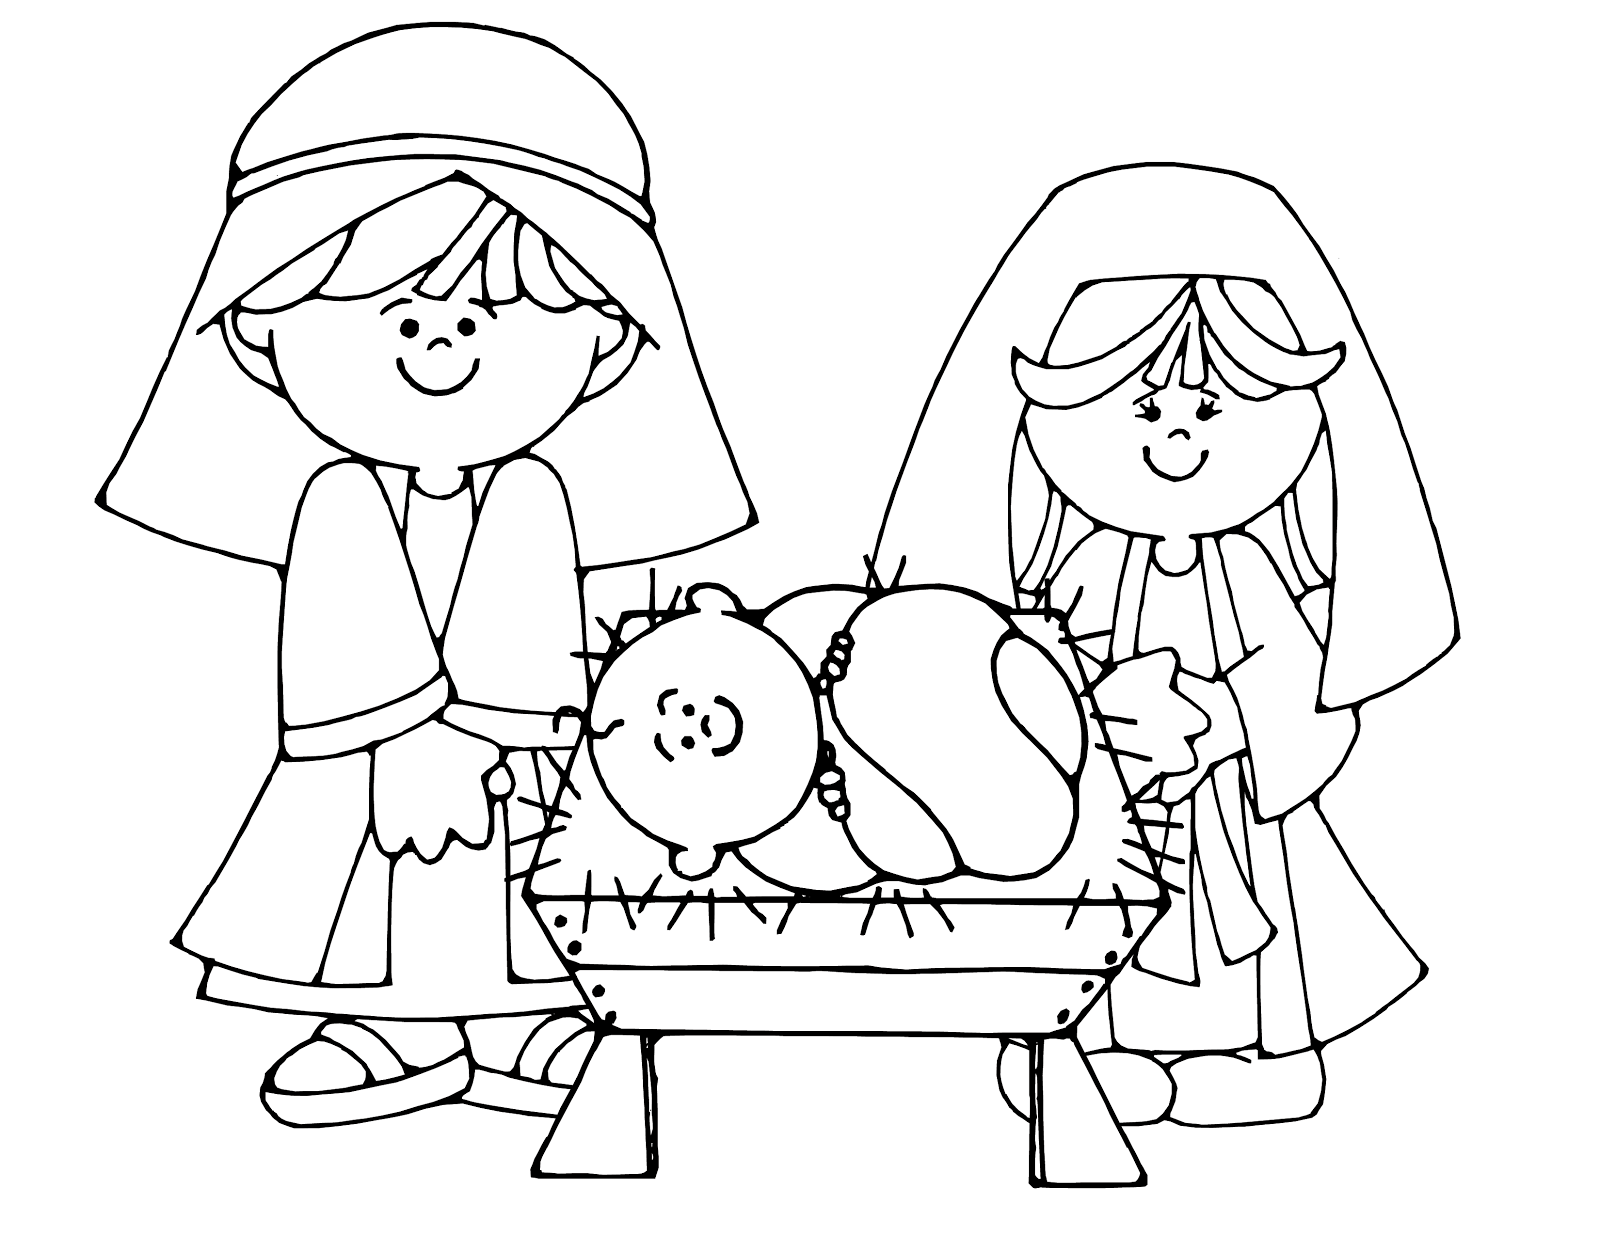 Printable Christmas Coloring Pages Nativity Scene With Simple Colouring Page Kids Crafts Pinterest